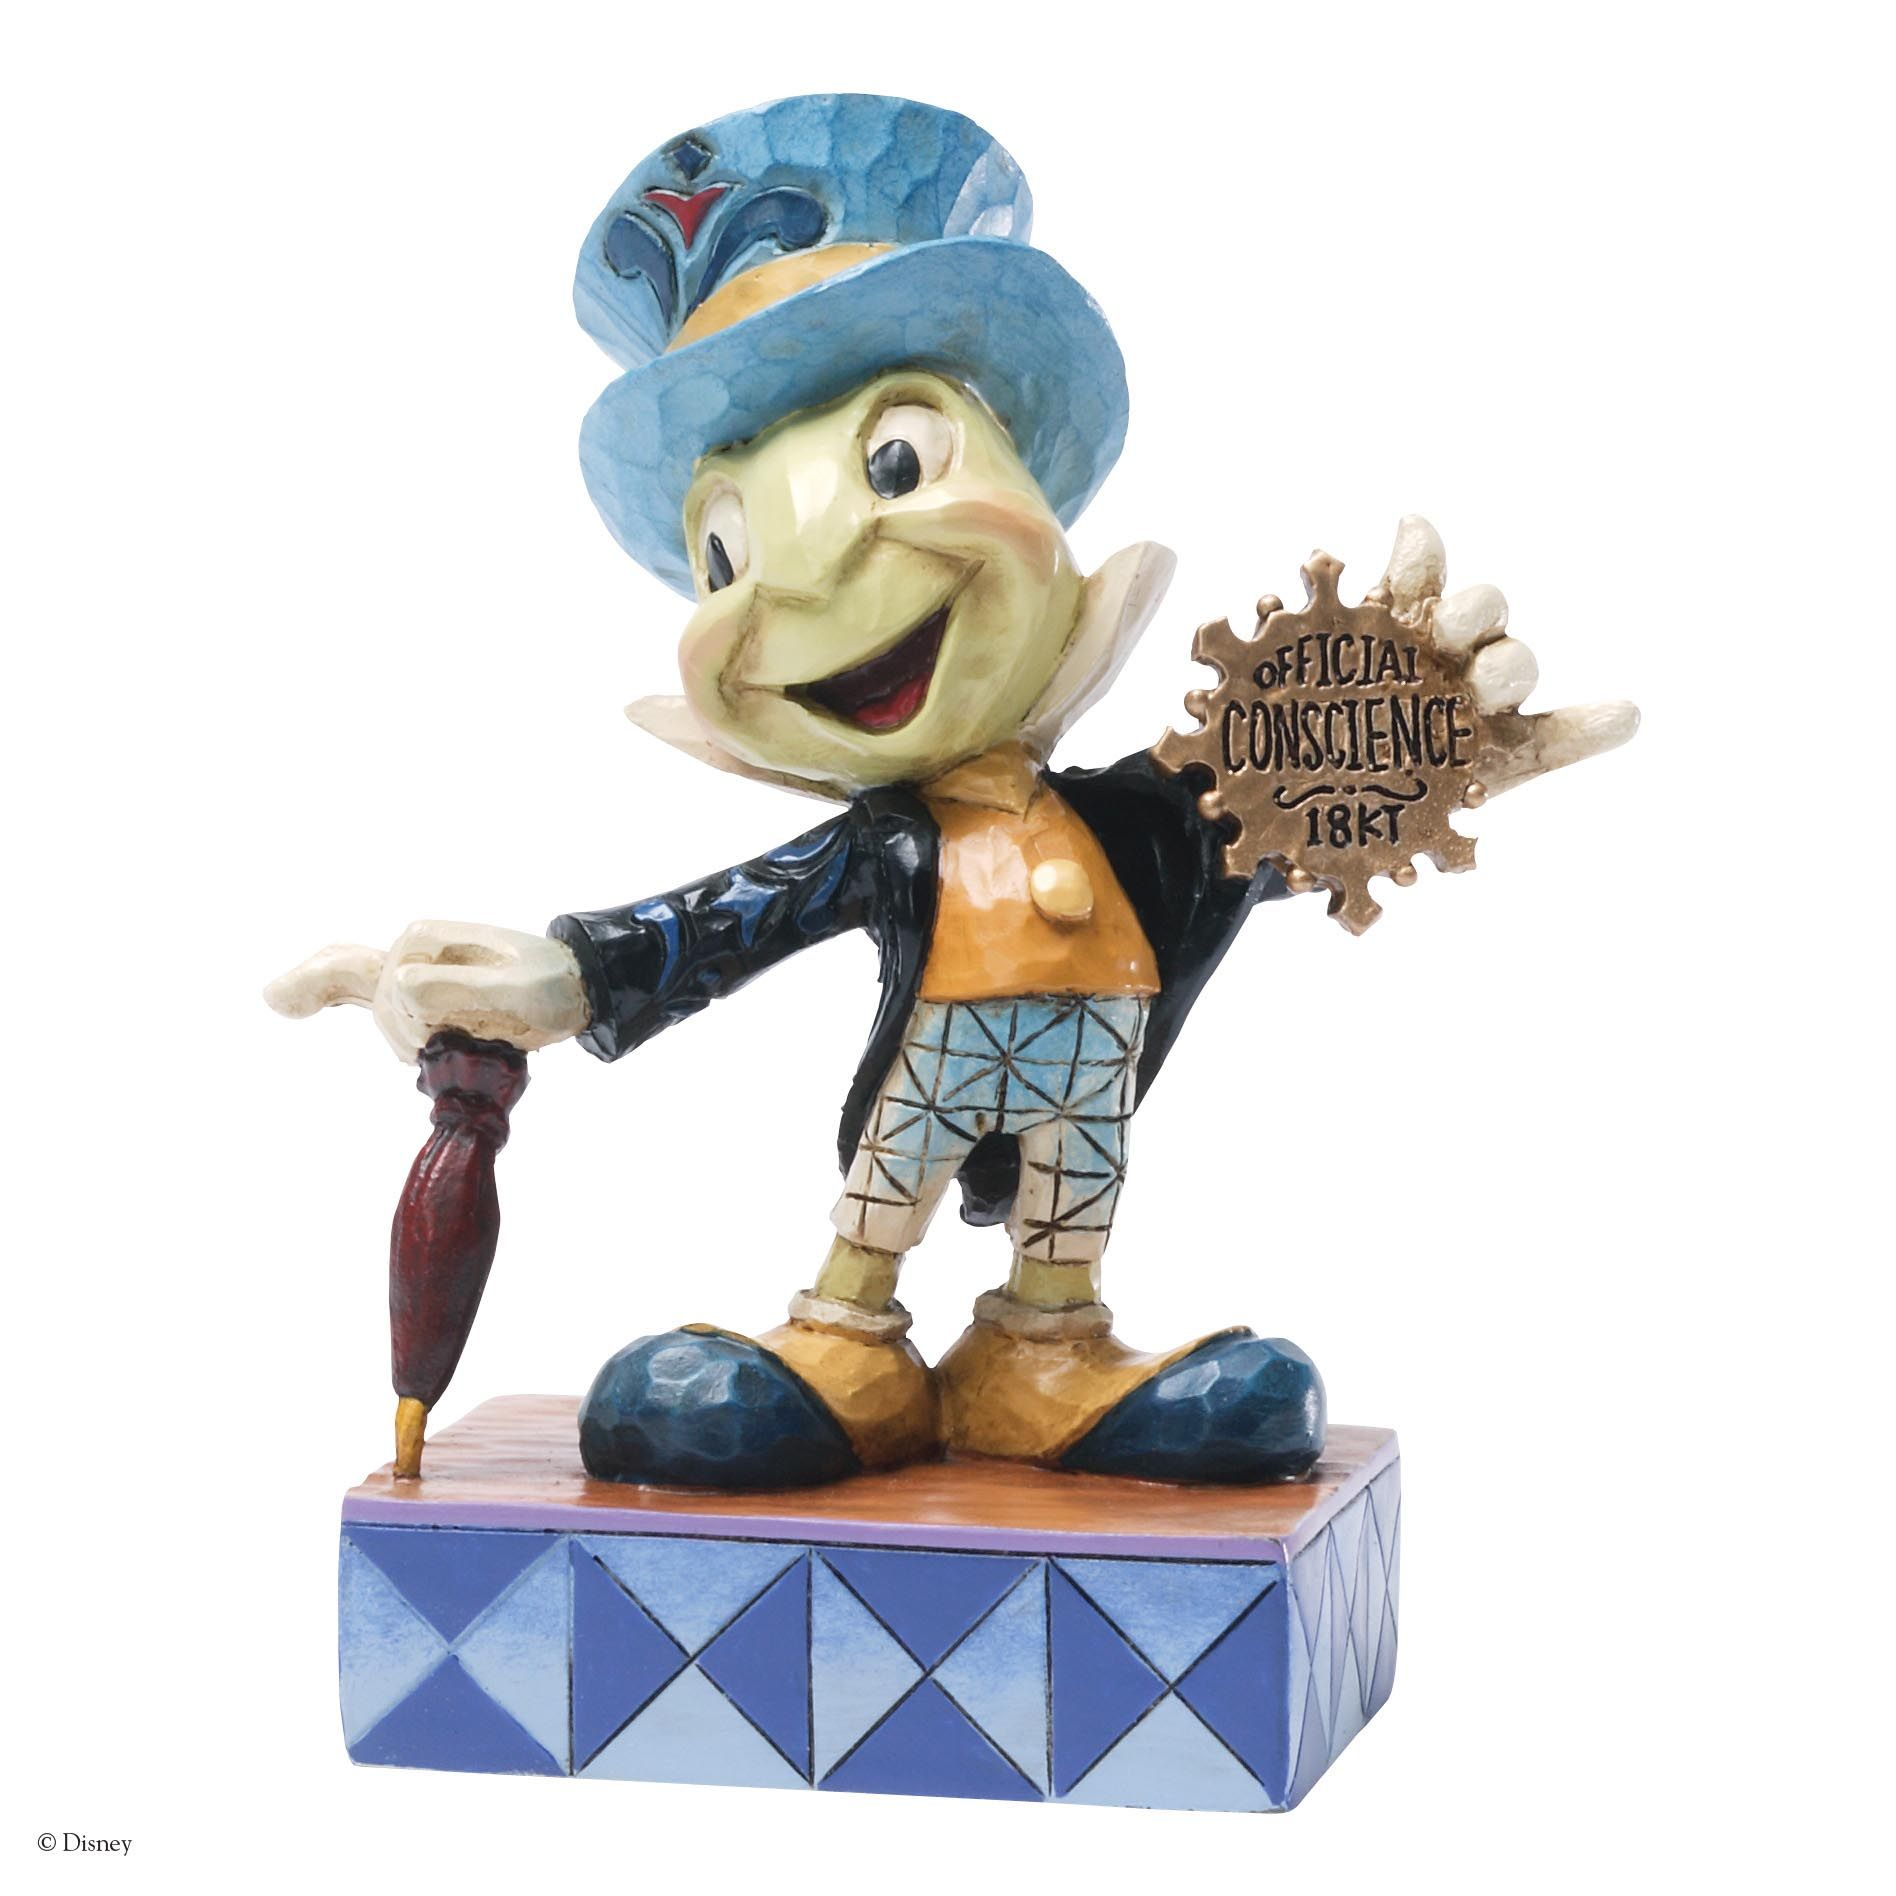 4031474 Official Conscience (Jiminy Cricket)- Jiminy Cricket gets his official Conscience badge and helps us all stay on the right track #disney #jimshore #enesco